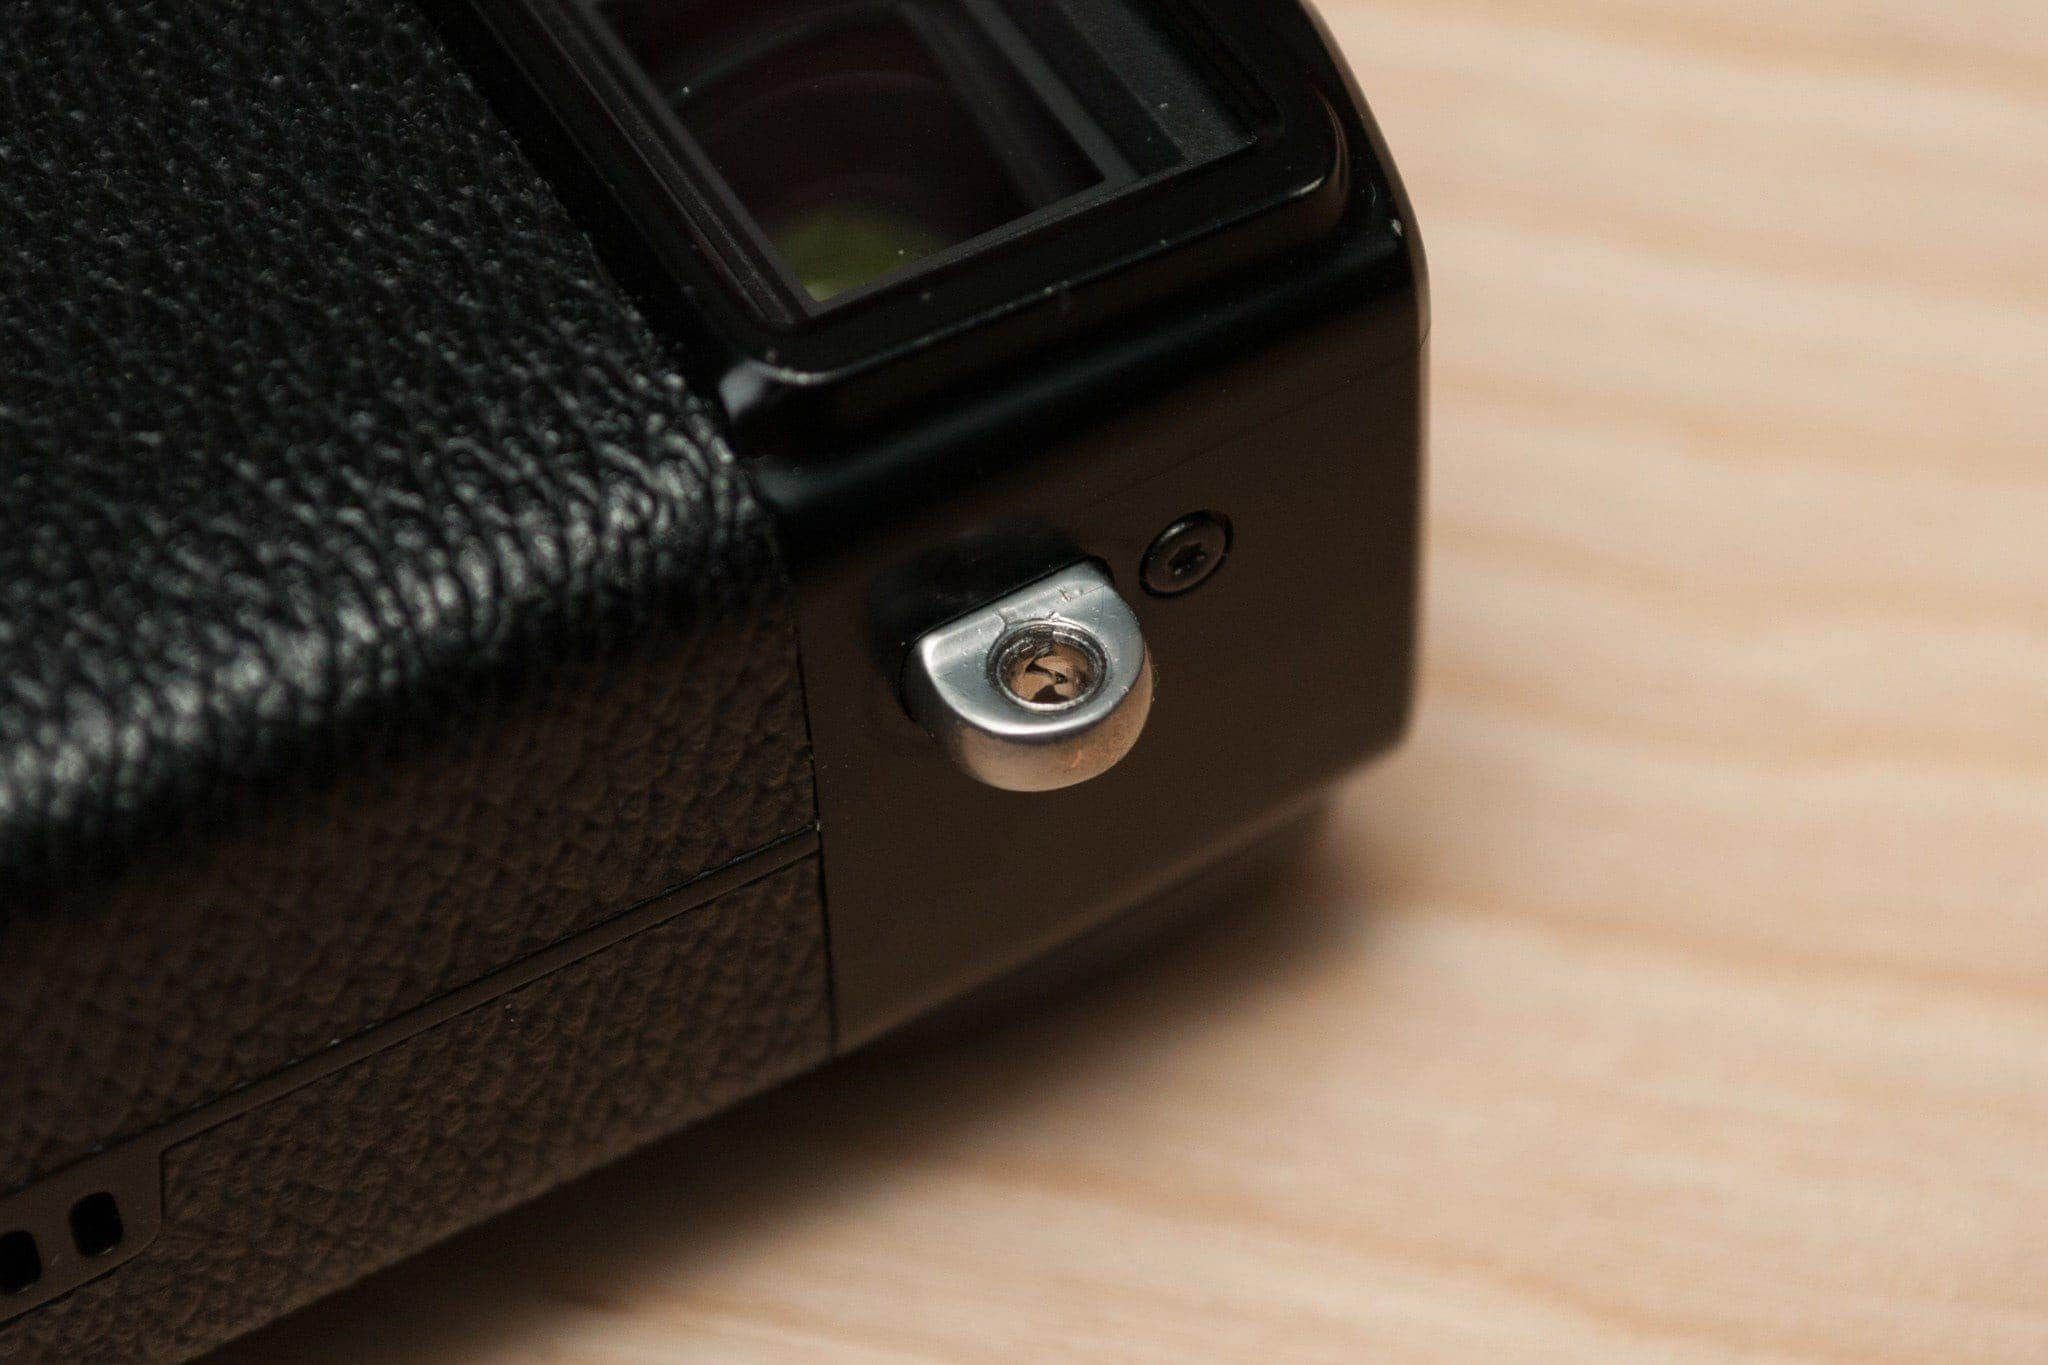 This is what a Fujifilm strap lug insert looks like in the lug.